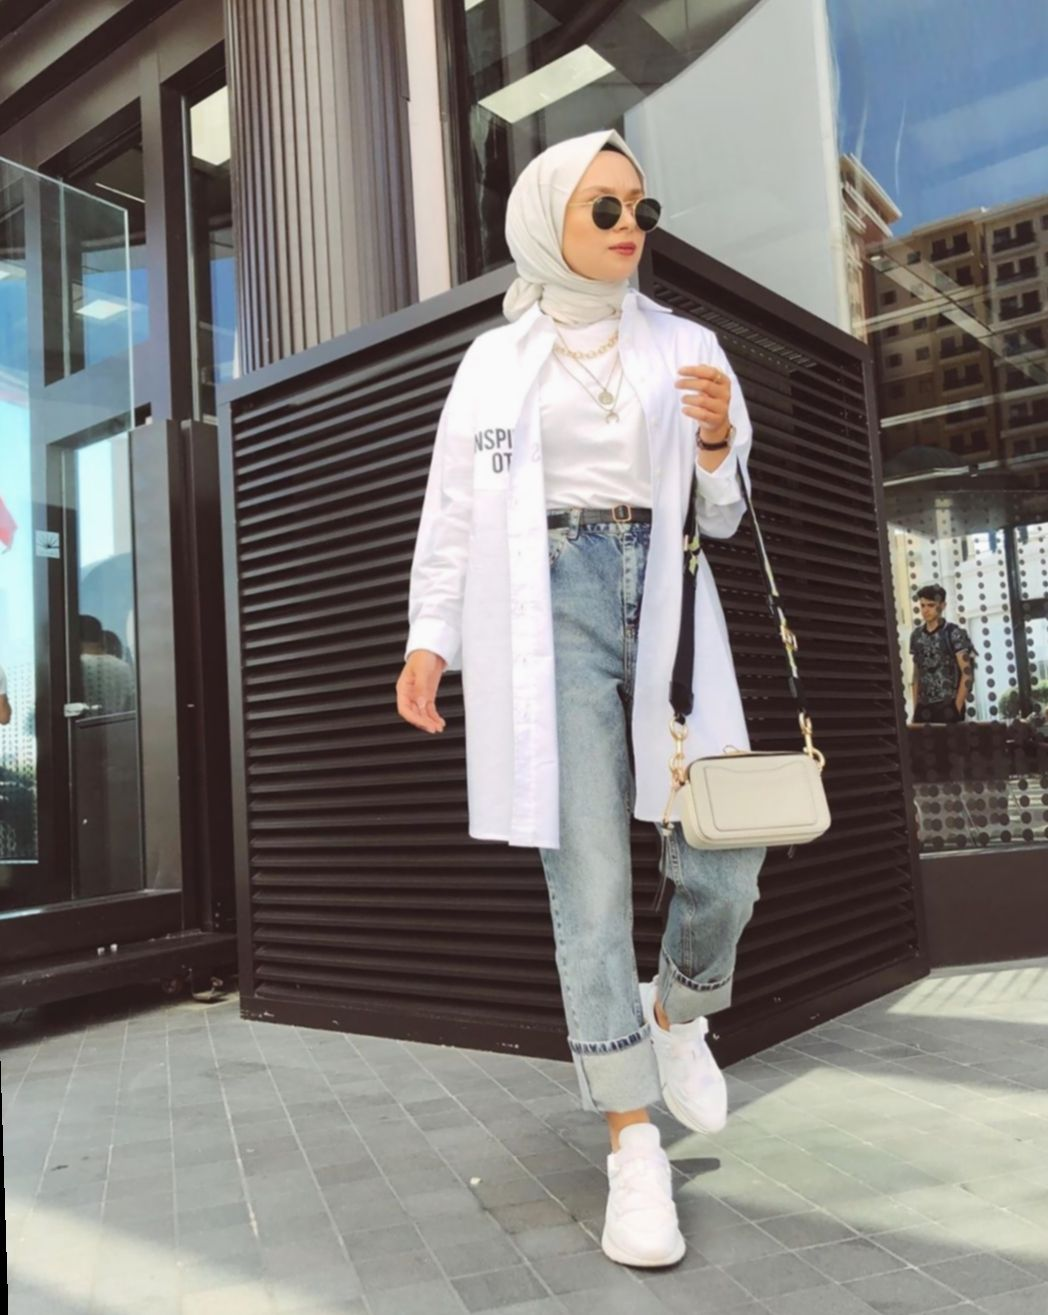 ✔ Fashion Summer Hijab Outfit #gimaashi #photooftheday #beautiful